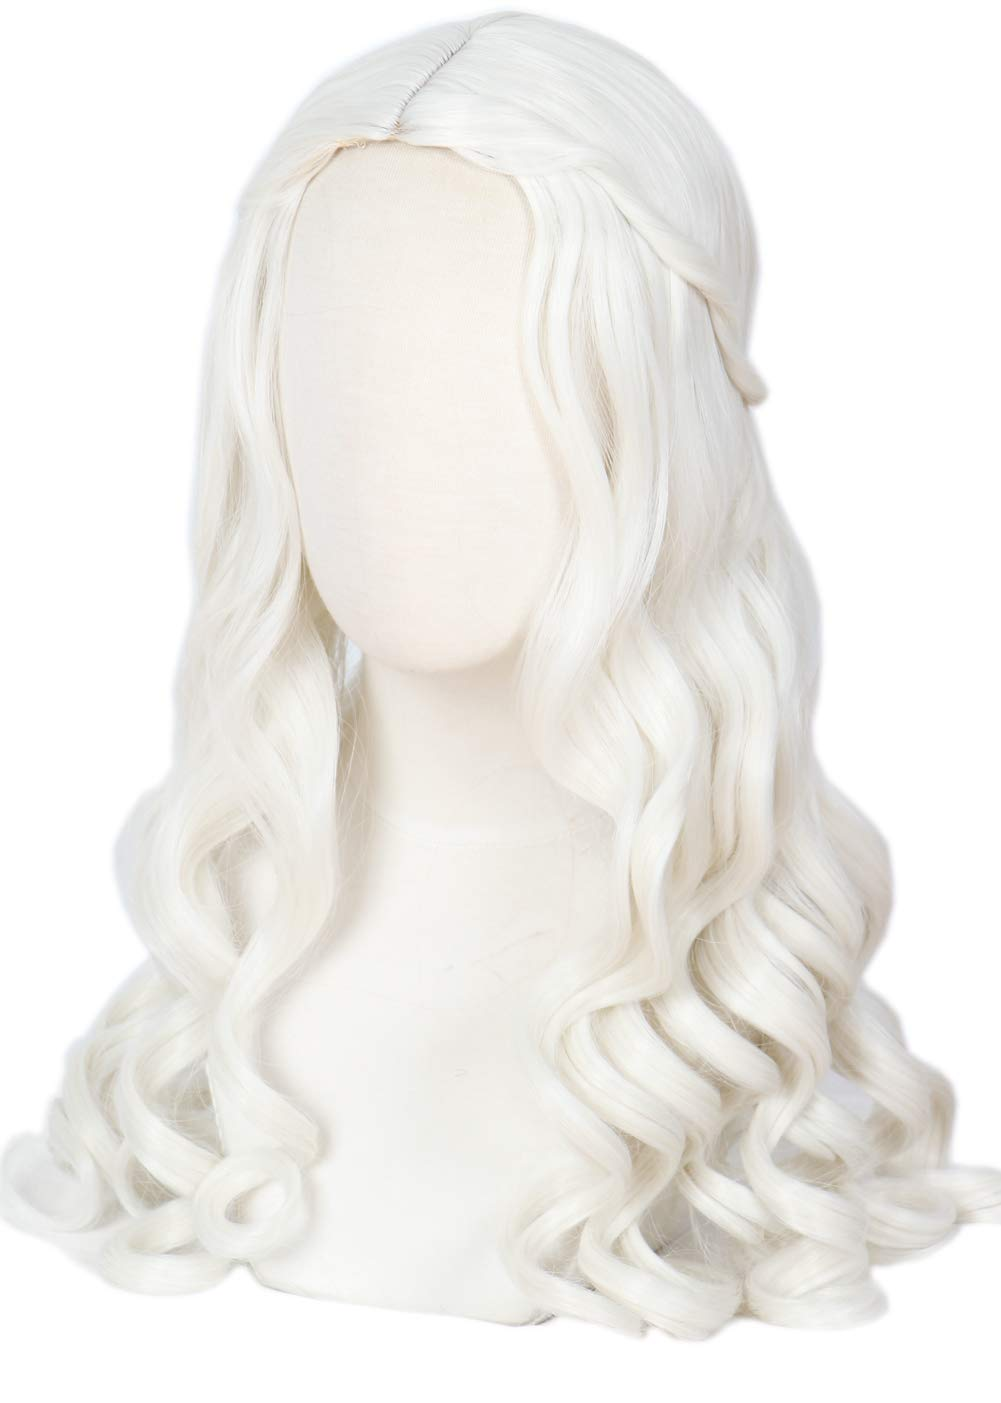 Linfairy Women Girl's White Blonde Long Purchase Cospl We OFFer at cheap prices Wig Halloween Wavy